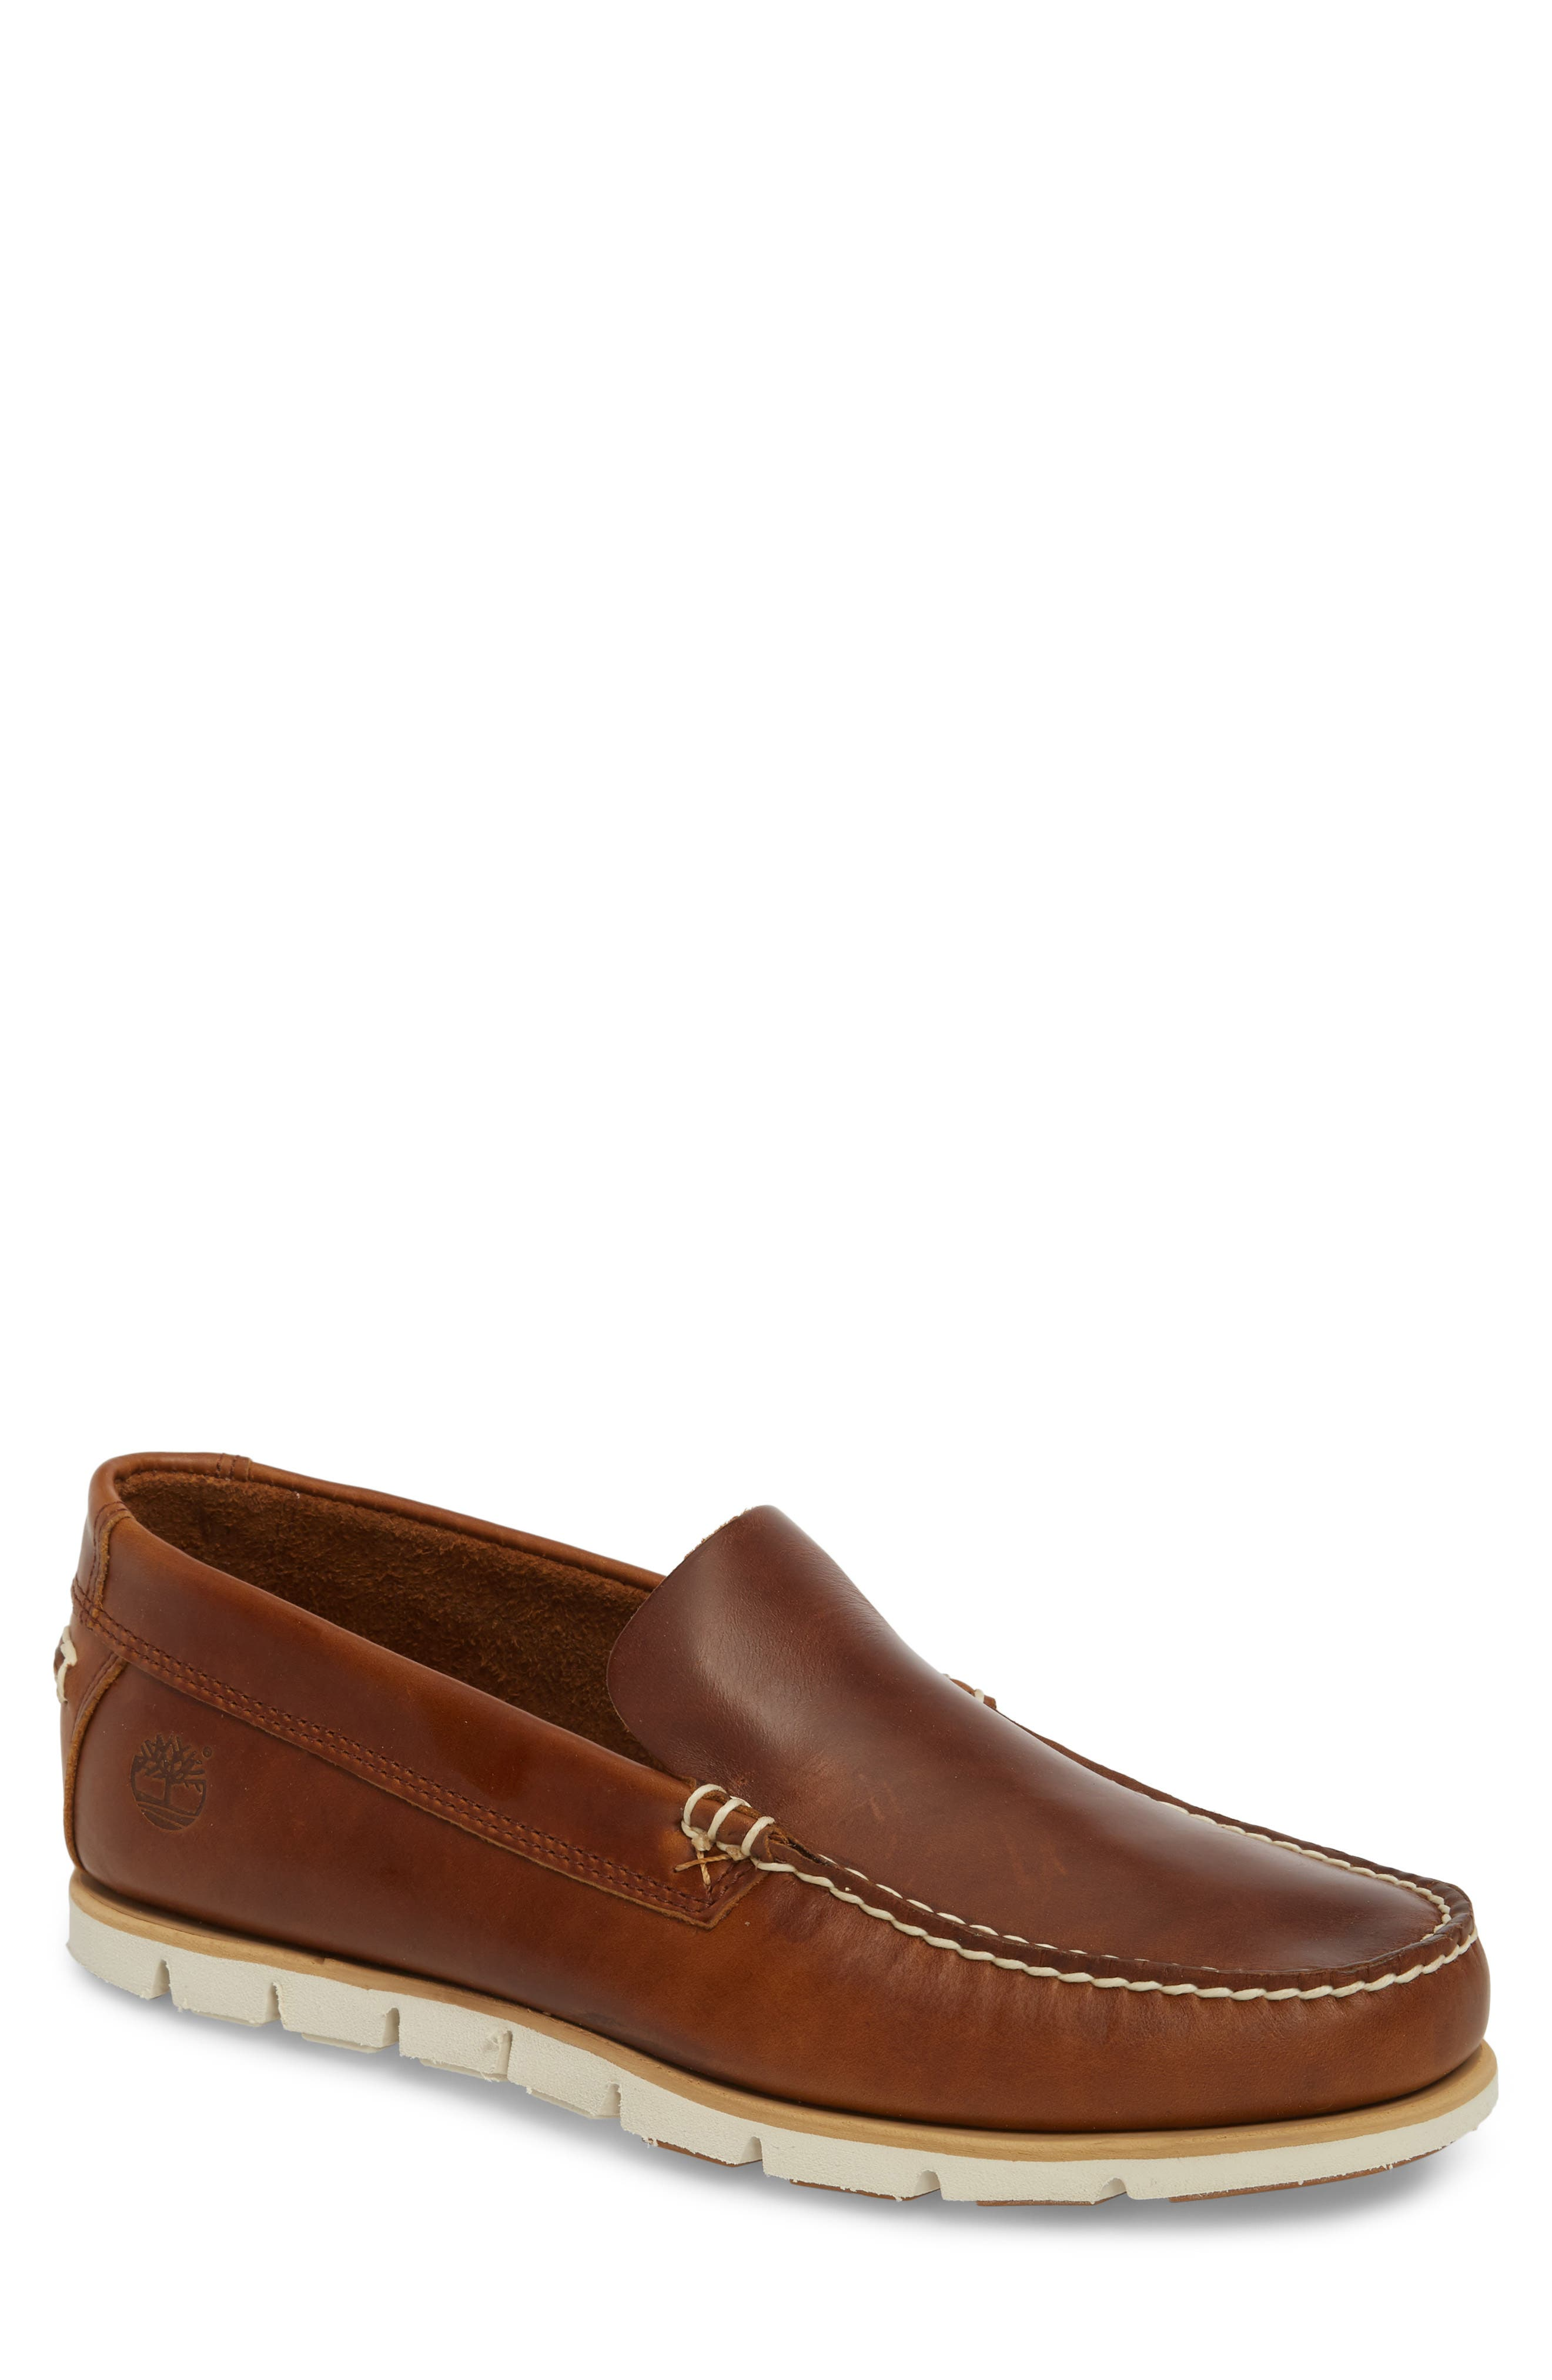 Tidelands Venetian Loafer,                             Main thumbnail 1, color,